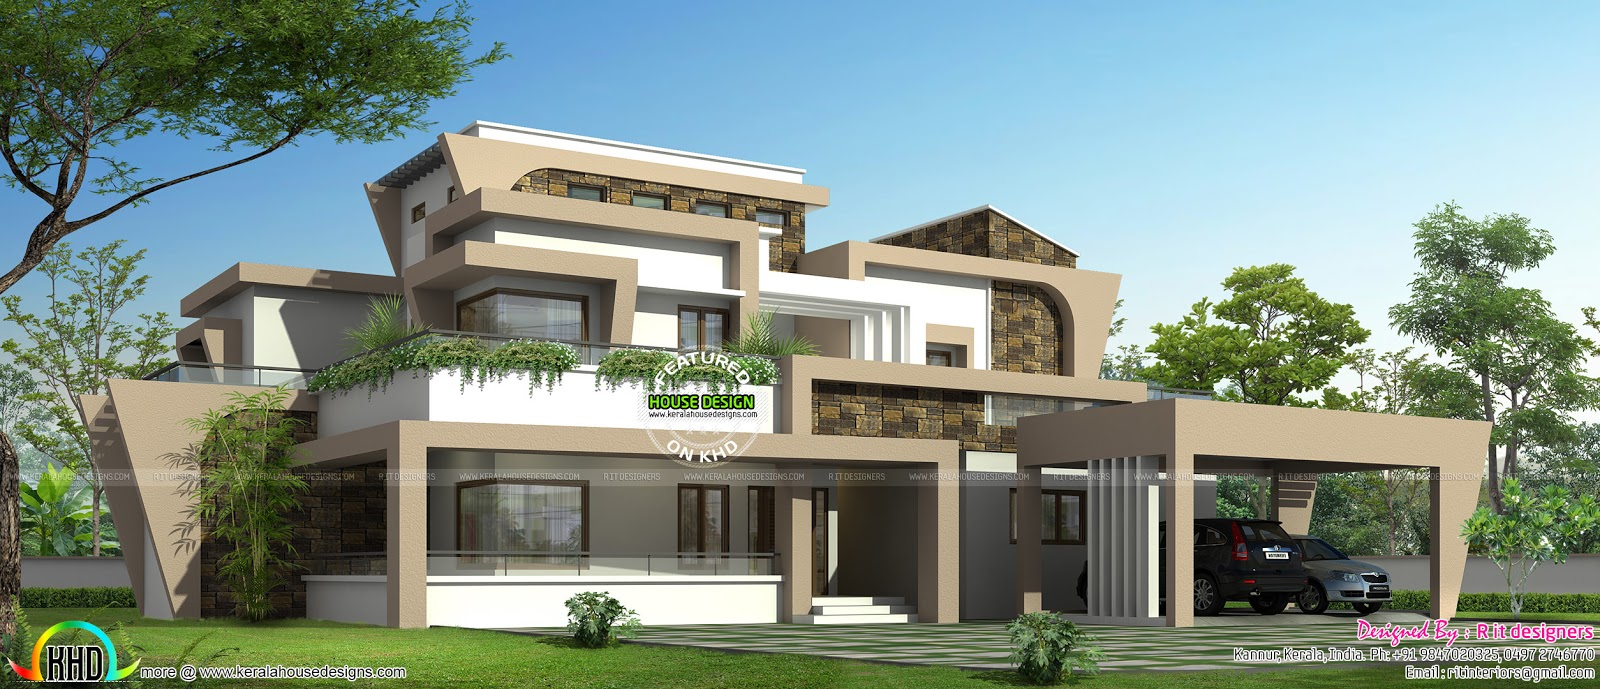 Unique modern home design in kerala kerala home design for Unique home plans